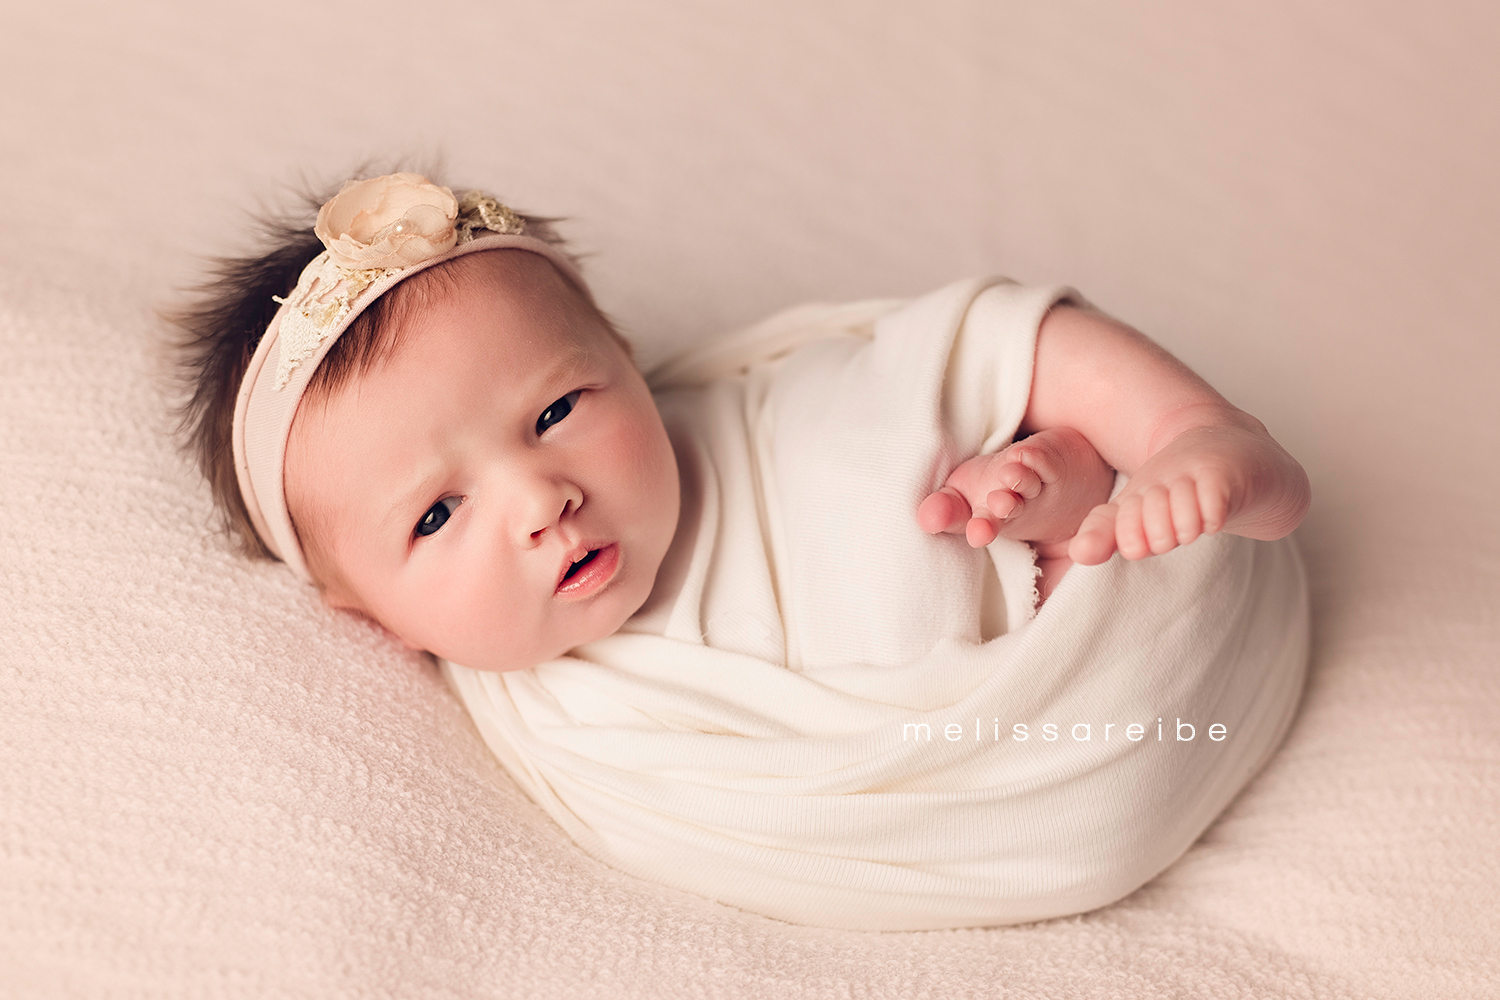 1130_Arkansas Newborn Photographer_open eyed newborn_open eyes_baby_wrapped_cream